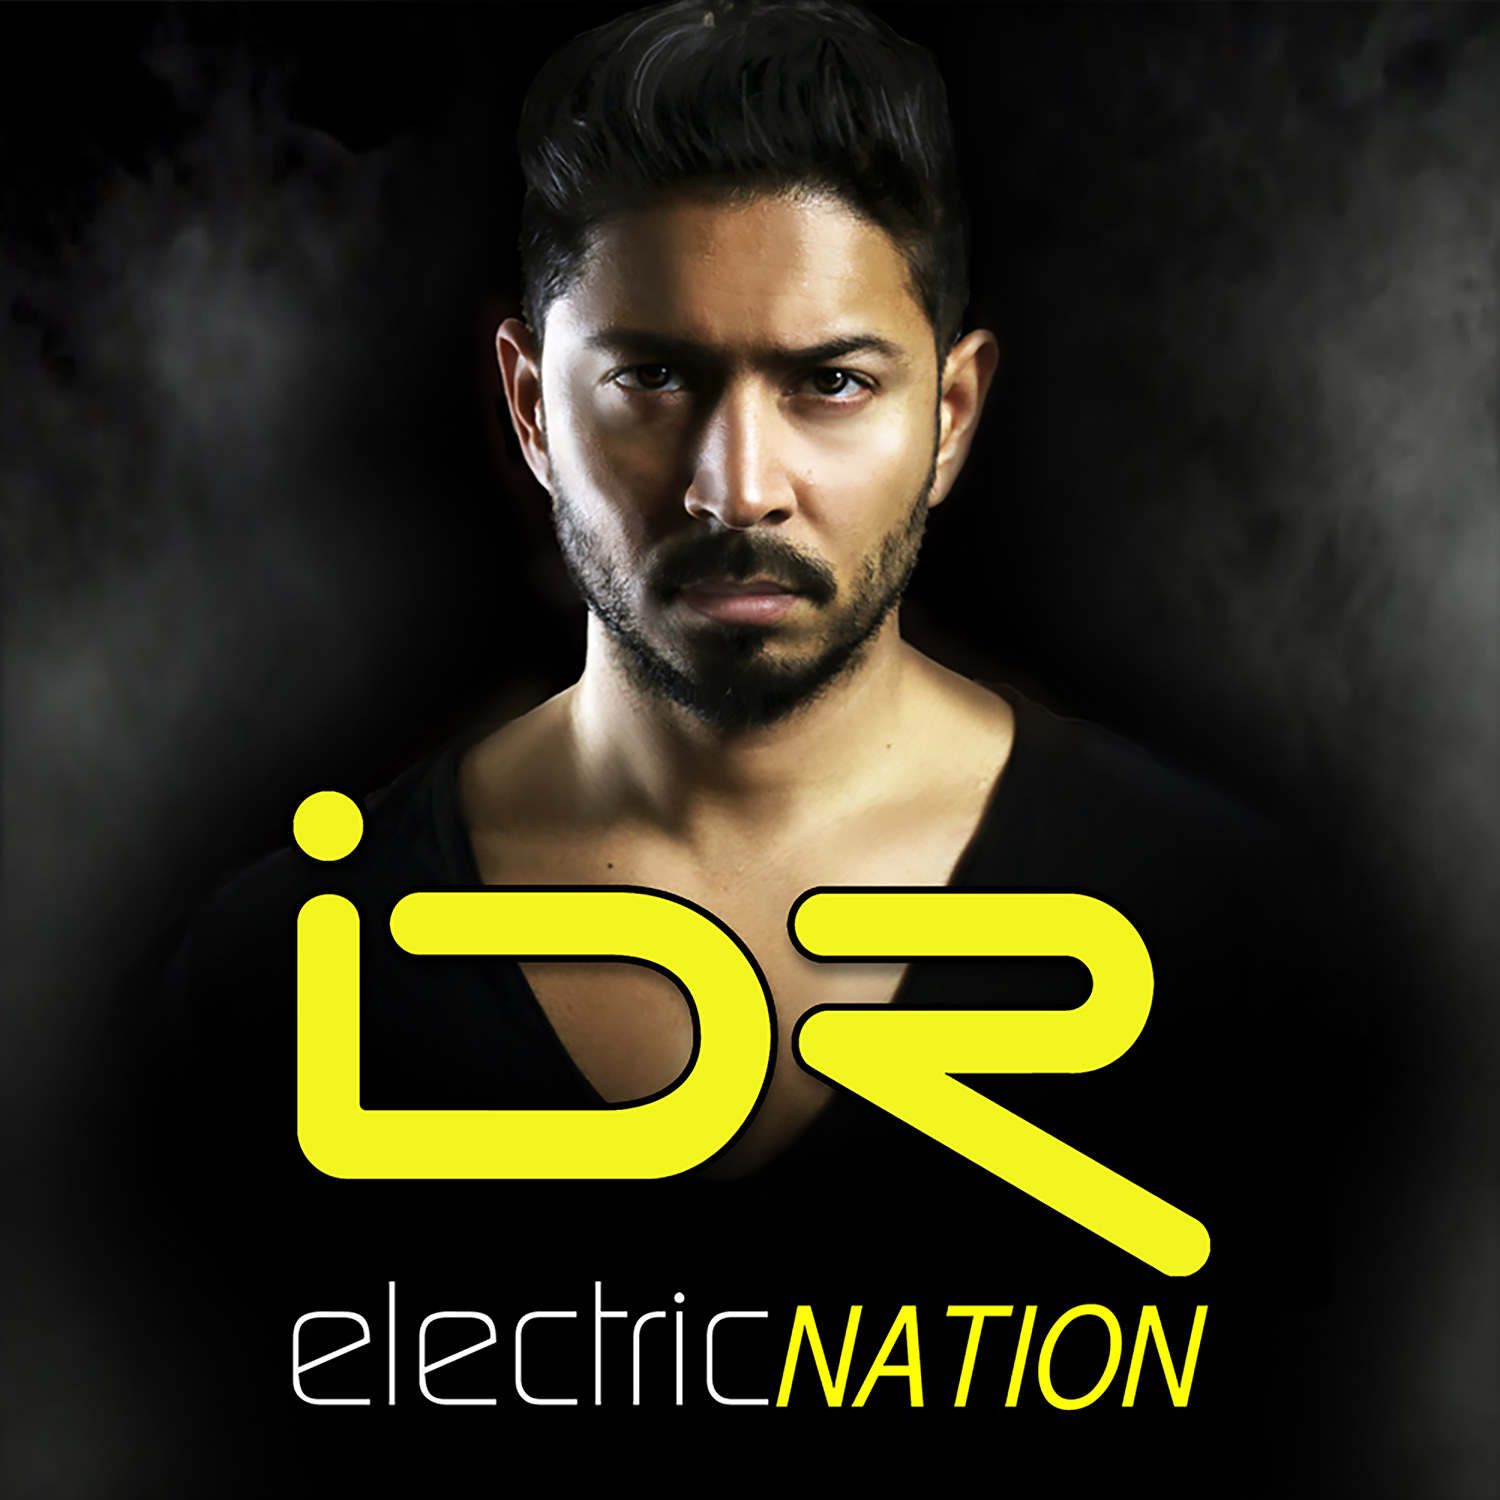 iDR Electric Nation